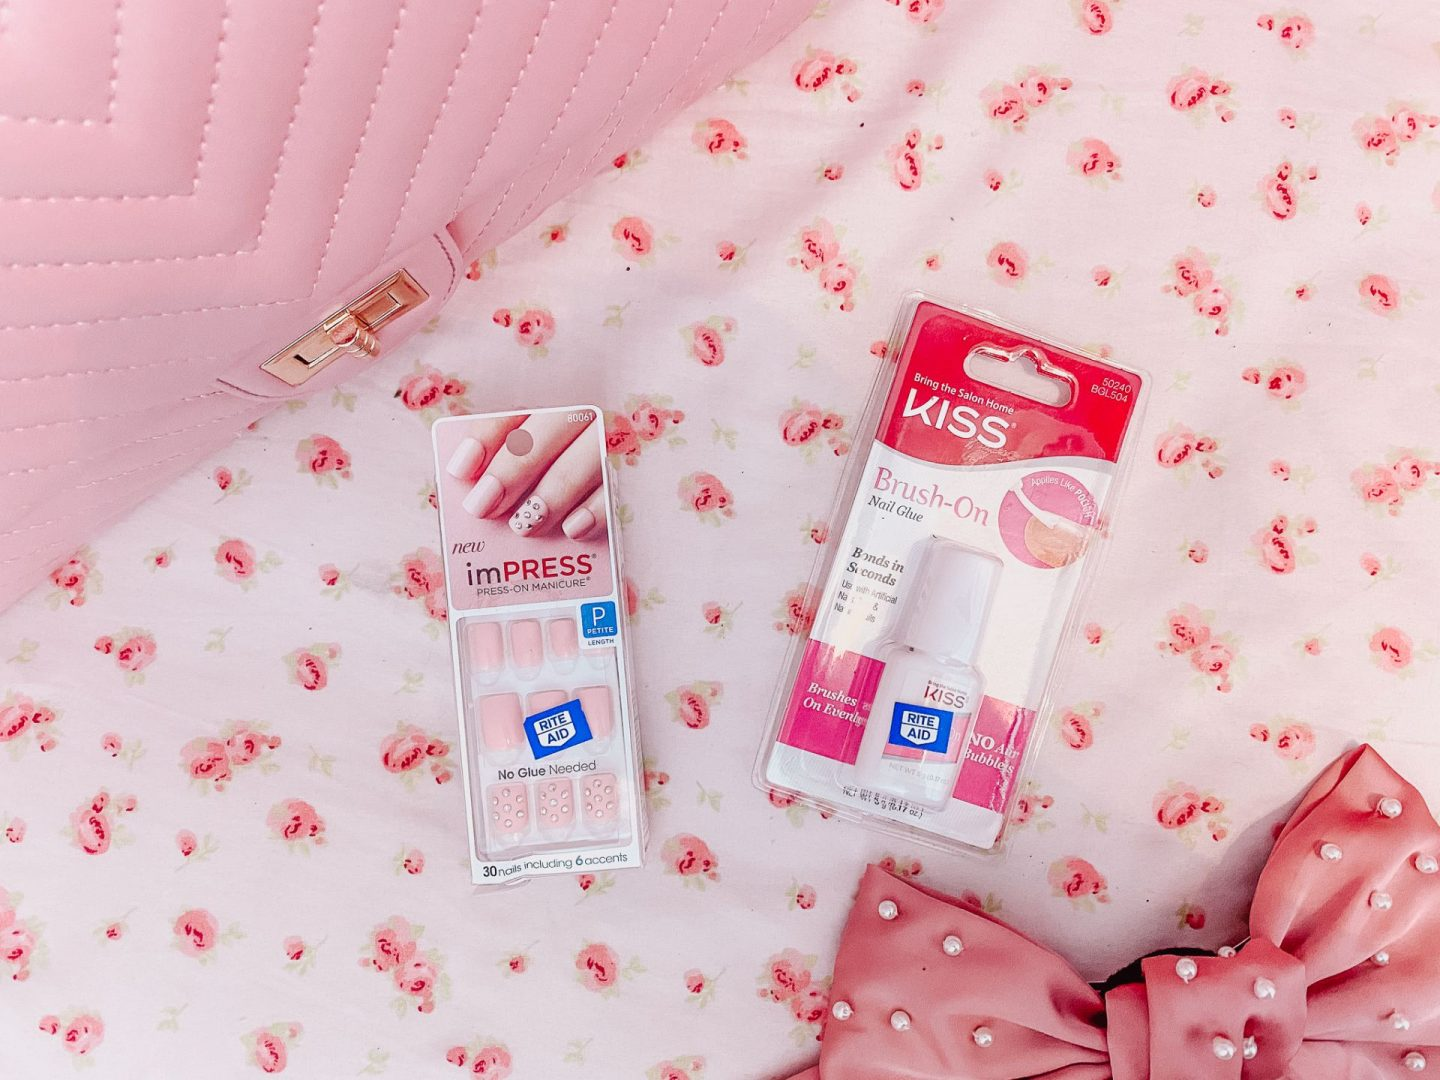 New In Beauty Buys I'm Excited To Try